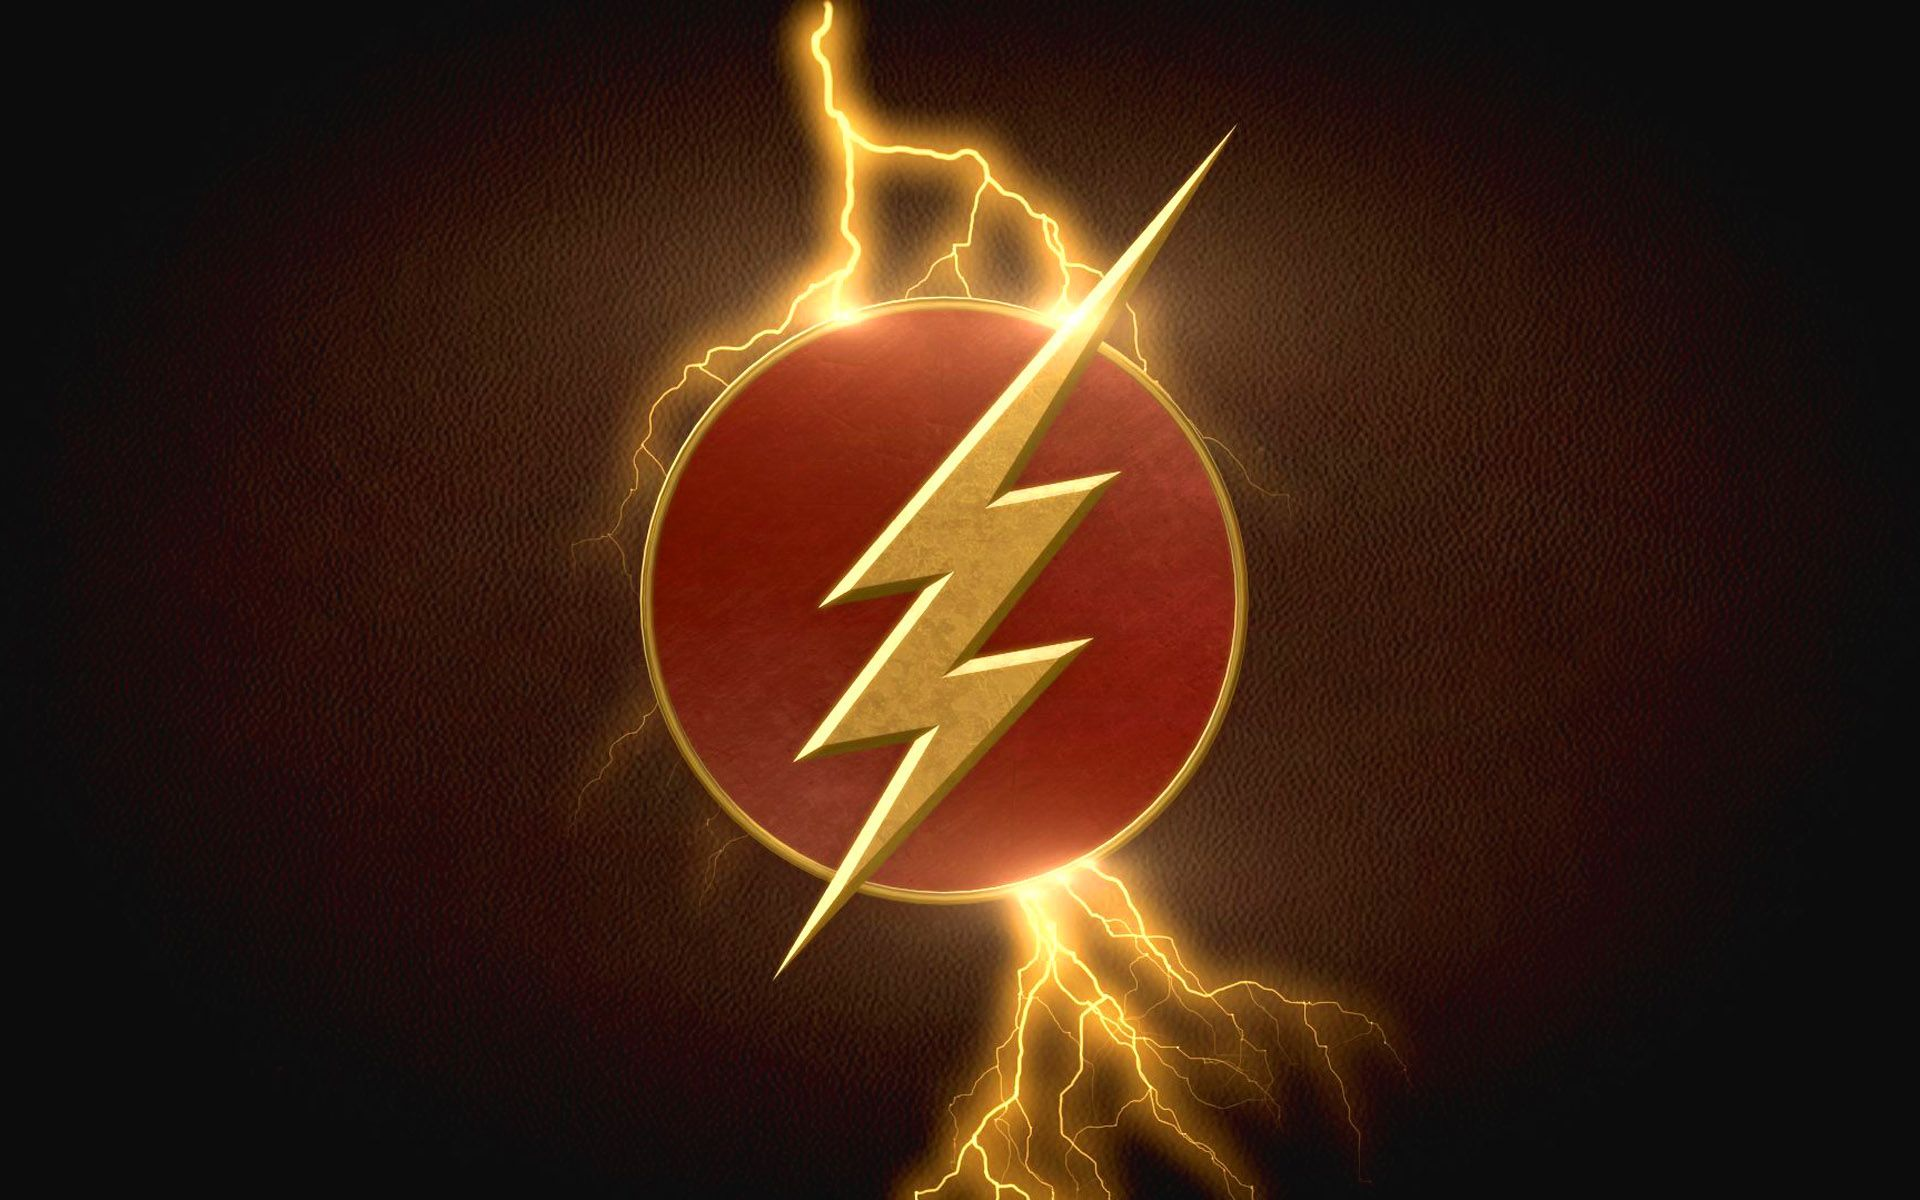 The Flash CW Logo Wallpaper   Projects to Try   Pinterest ...